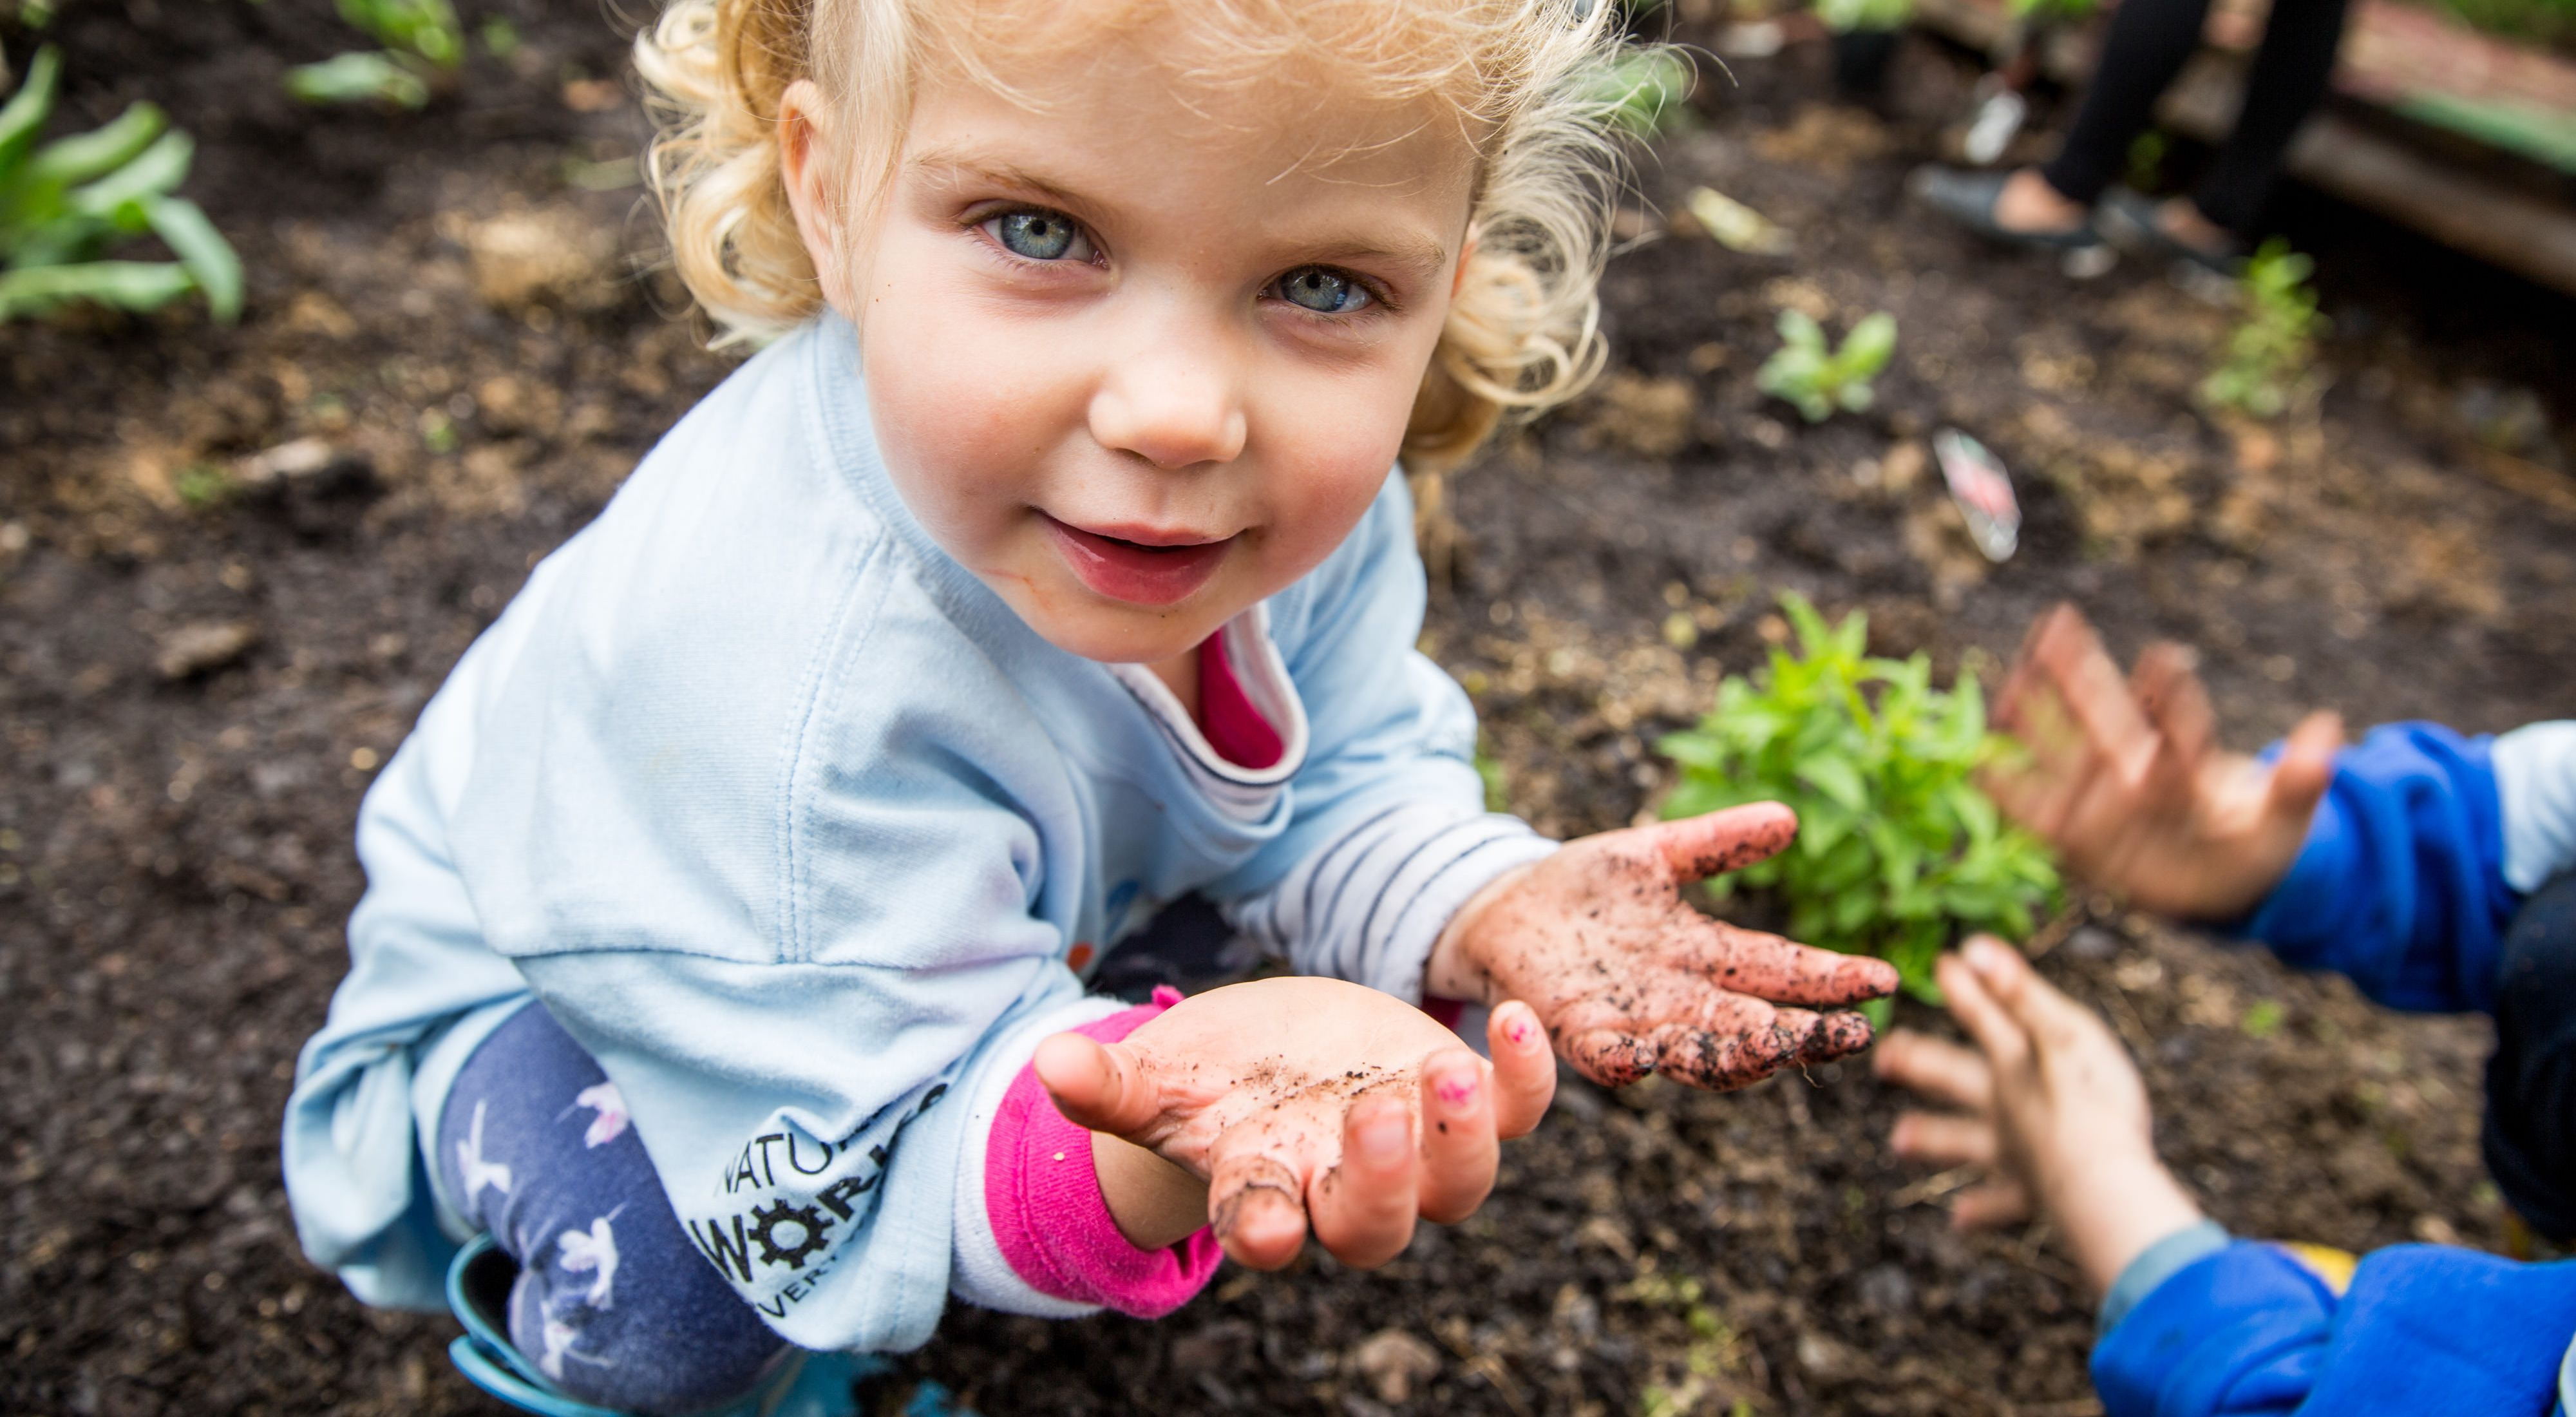 A young girl volunteers at Seaton Elementary school for a garden build day in the Shaw District of Washington, D.C.